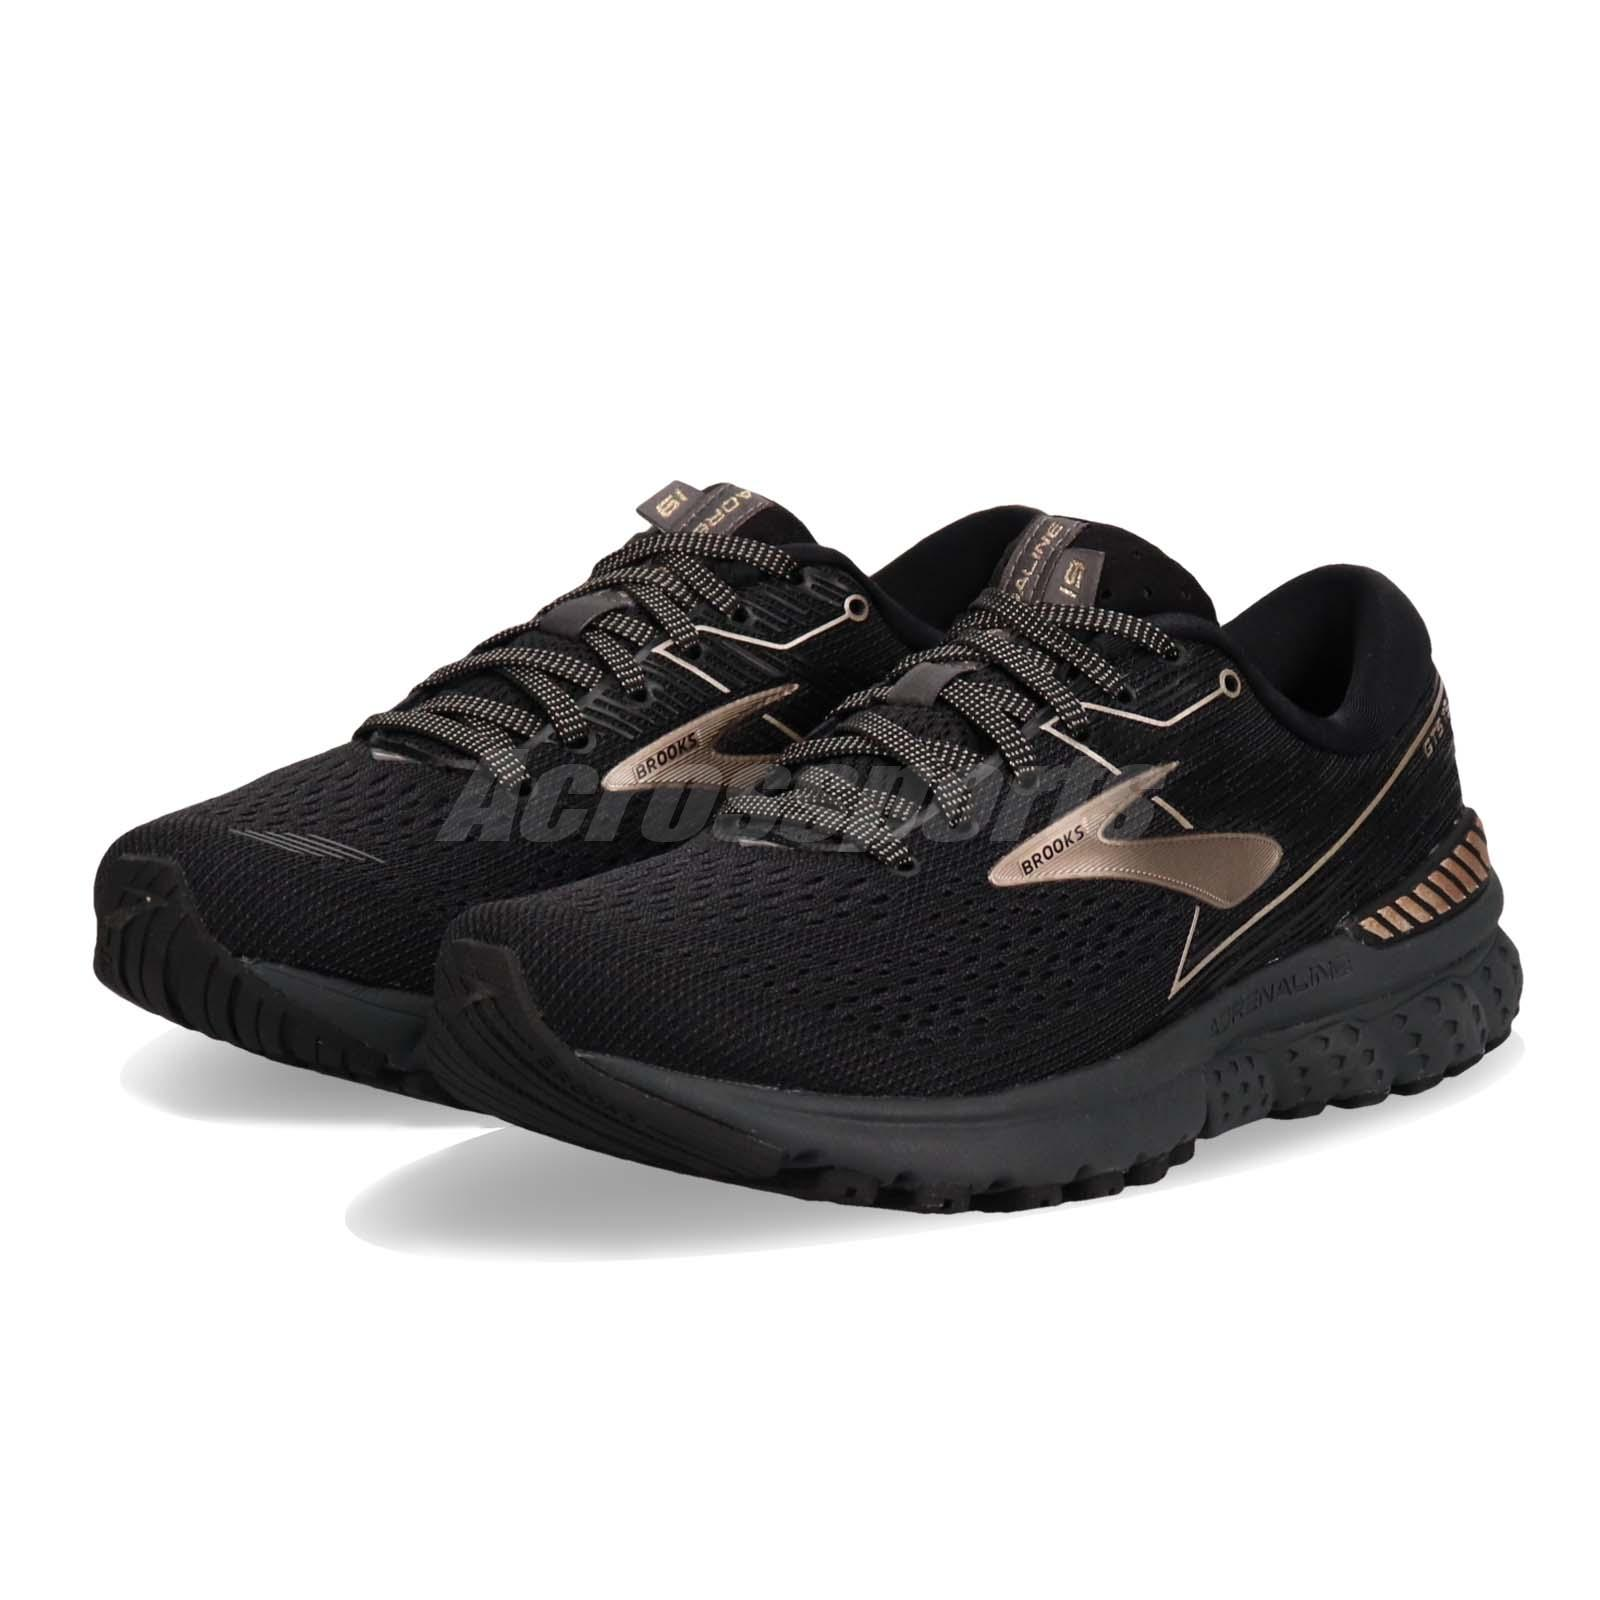 27e1a909d07 Details about Brooks Adrenaline GTS 19 Black Champagne Women Running Shoes  Sneakers 120284 1B